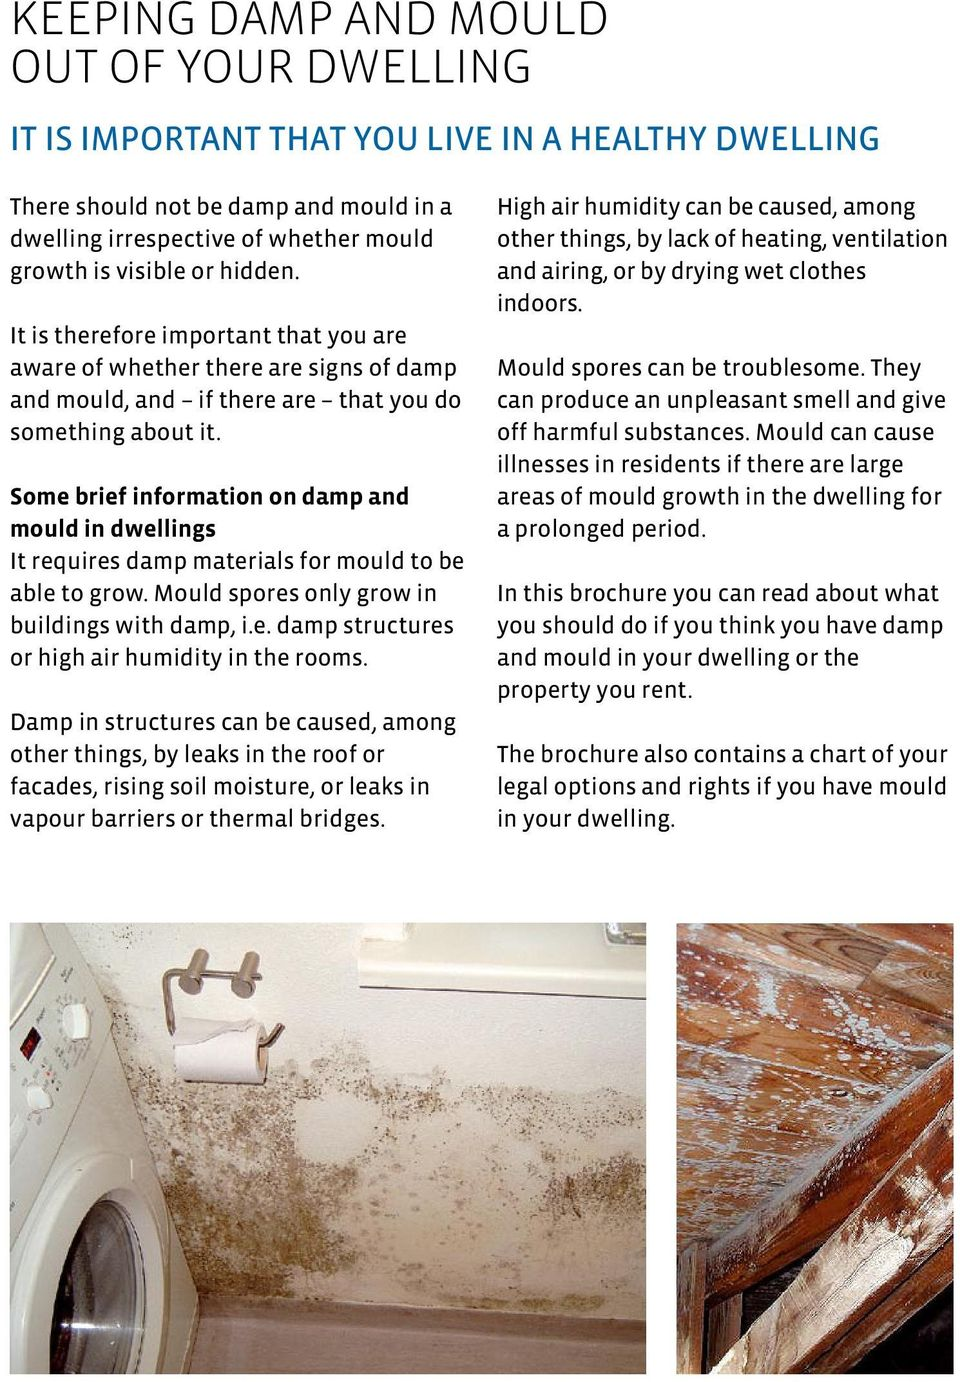 Some brief information on damp and mould in dwellings It requires damp materials for mould to be able to grow. Mould spores only grow in buildings with damp, i.e. damp structures or high air humidity in the rooms.